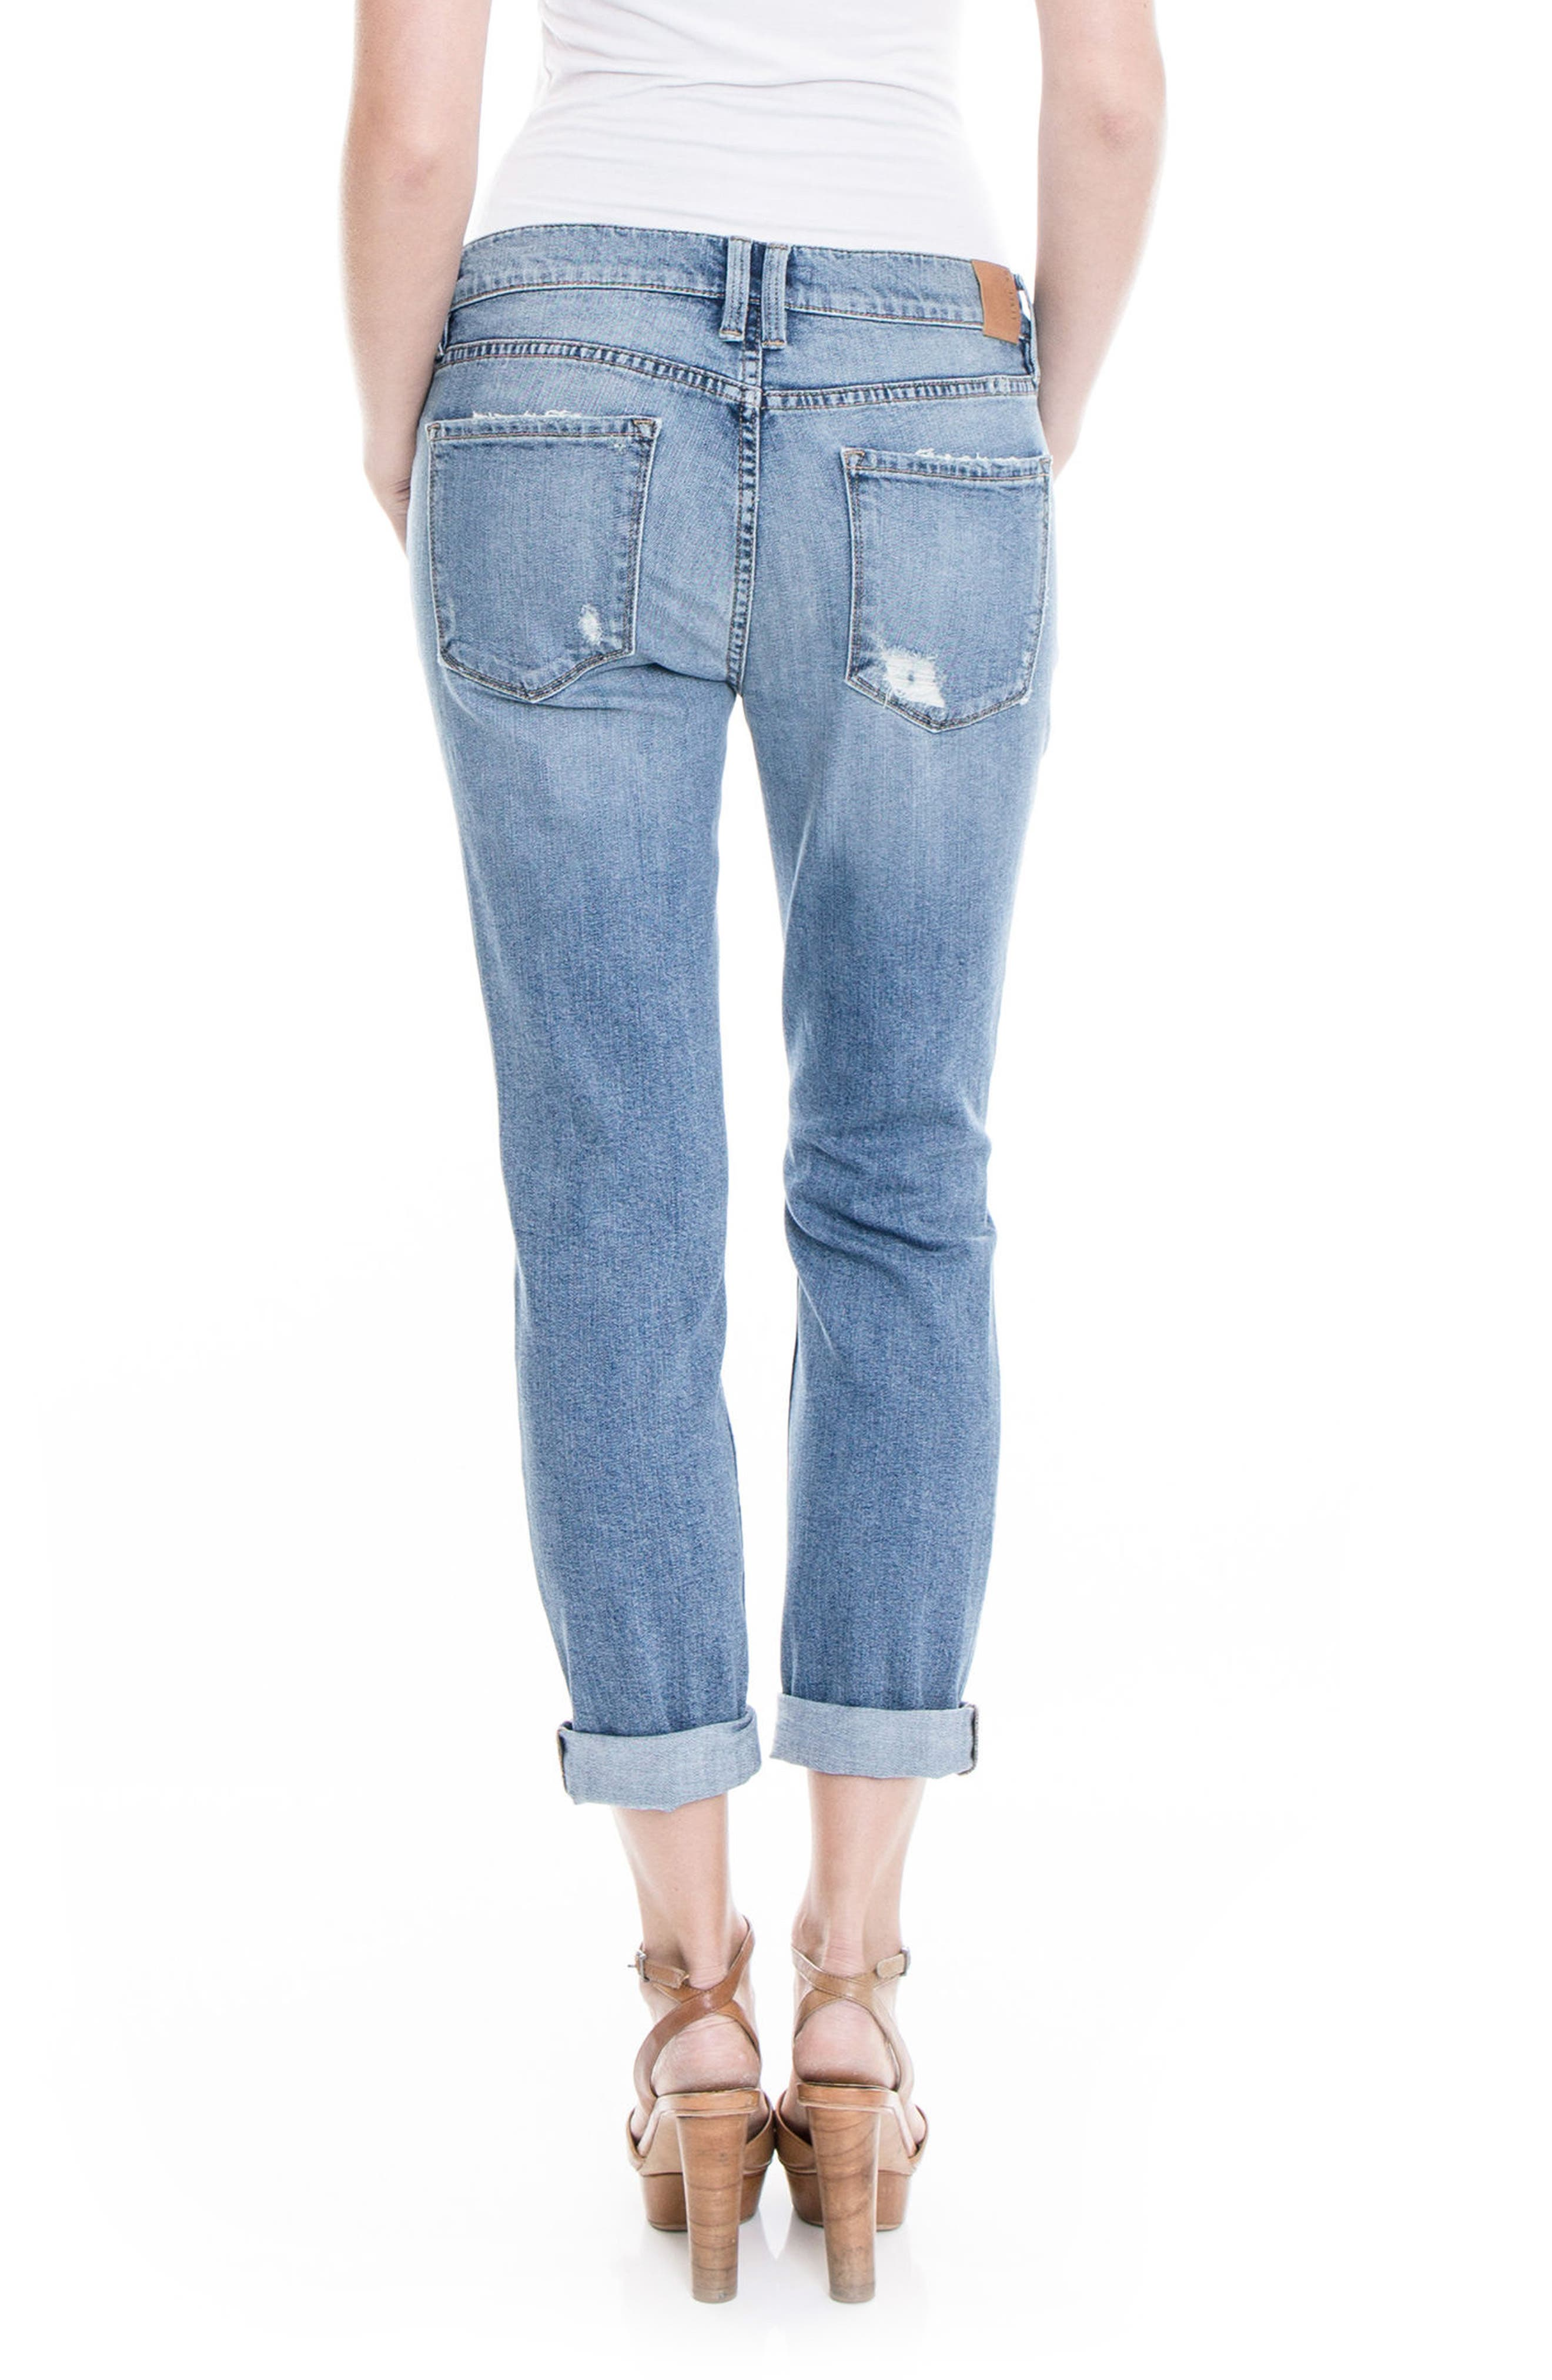 Sienna Stretch Ankle Jeans,                             Alternate thumbnail 2, color,                             Crosby Beach